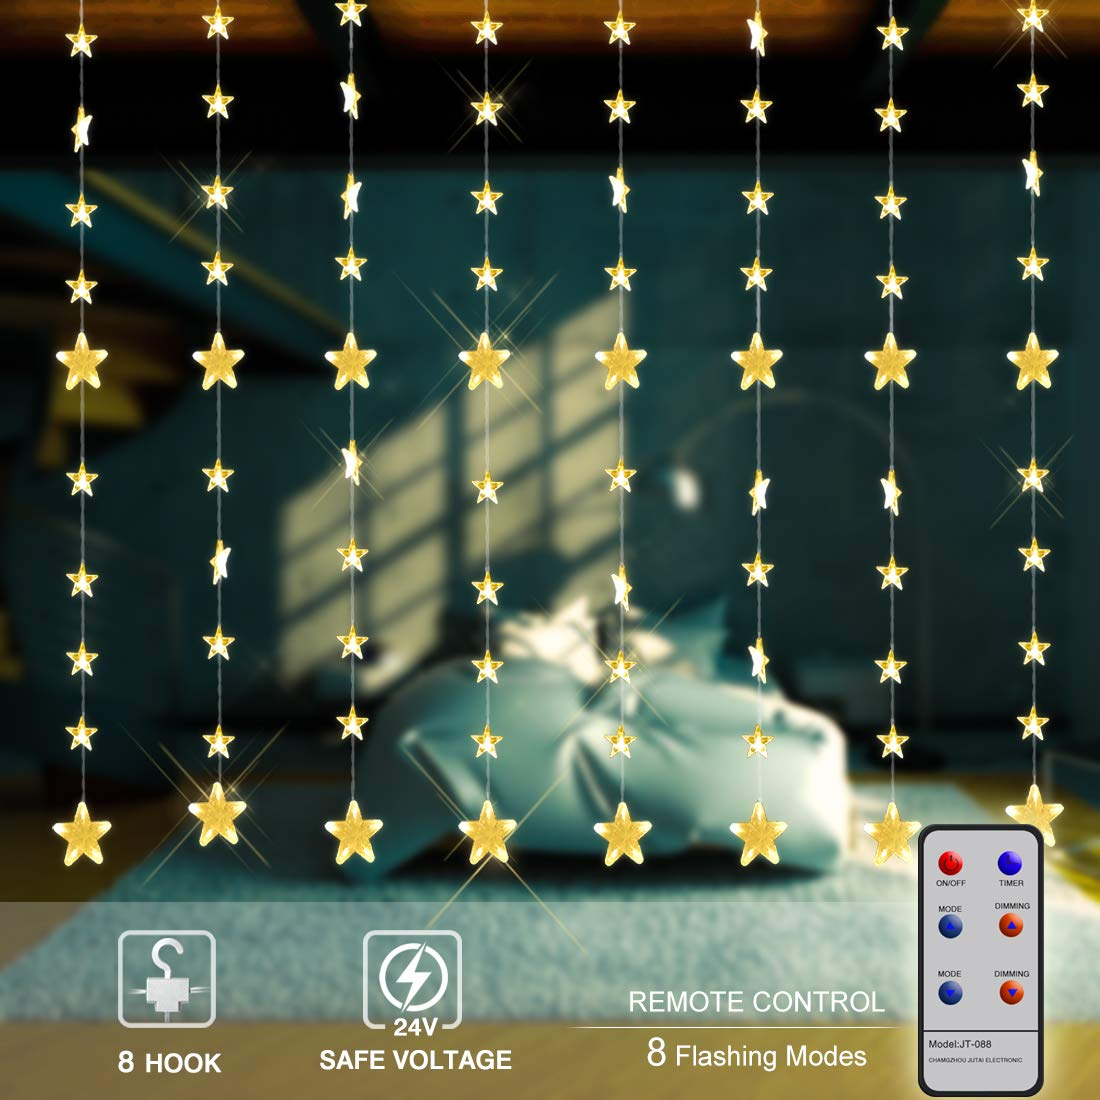 LED Curtain Lights,Yinuo 80 Stars 144 LEDs Window String Lights,Outdoor Indoor String Fairy Light with 8 Flashing Modes,Perfect for Christmas Wedding Party Home Garden Bedroom Lighting Decoration Yinuo Candle